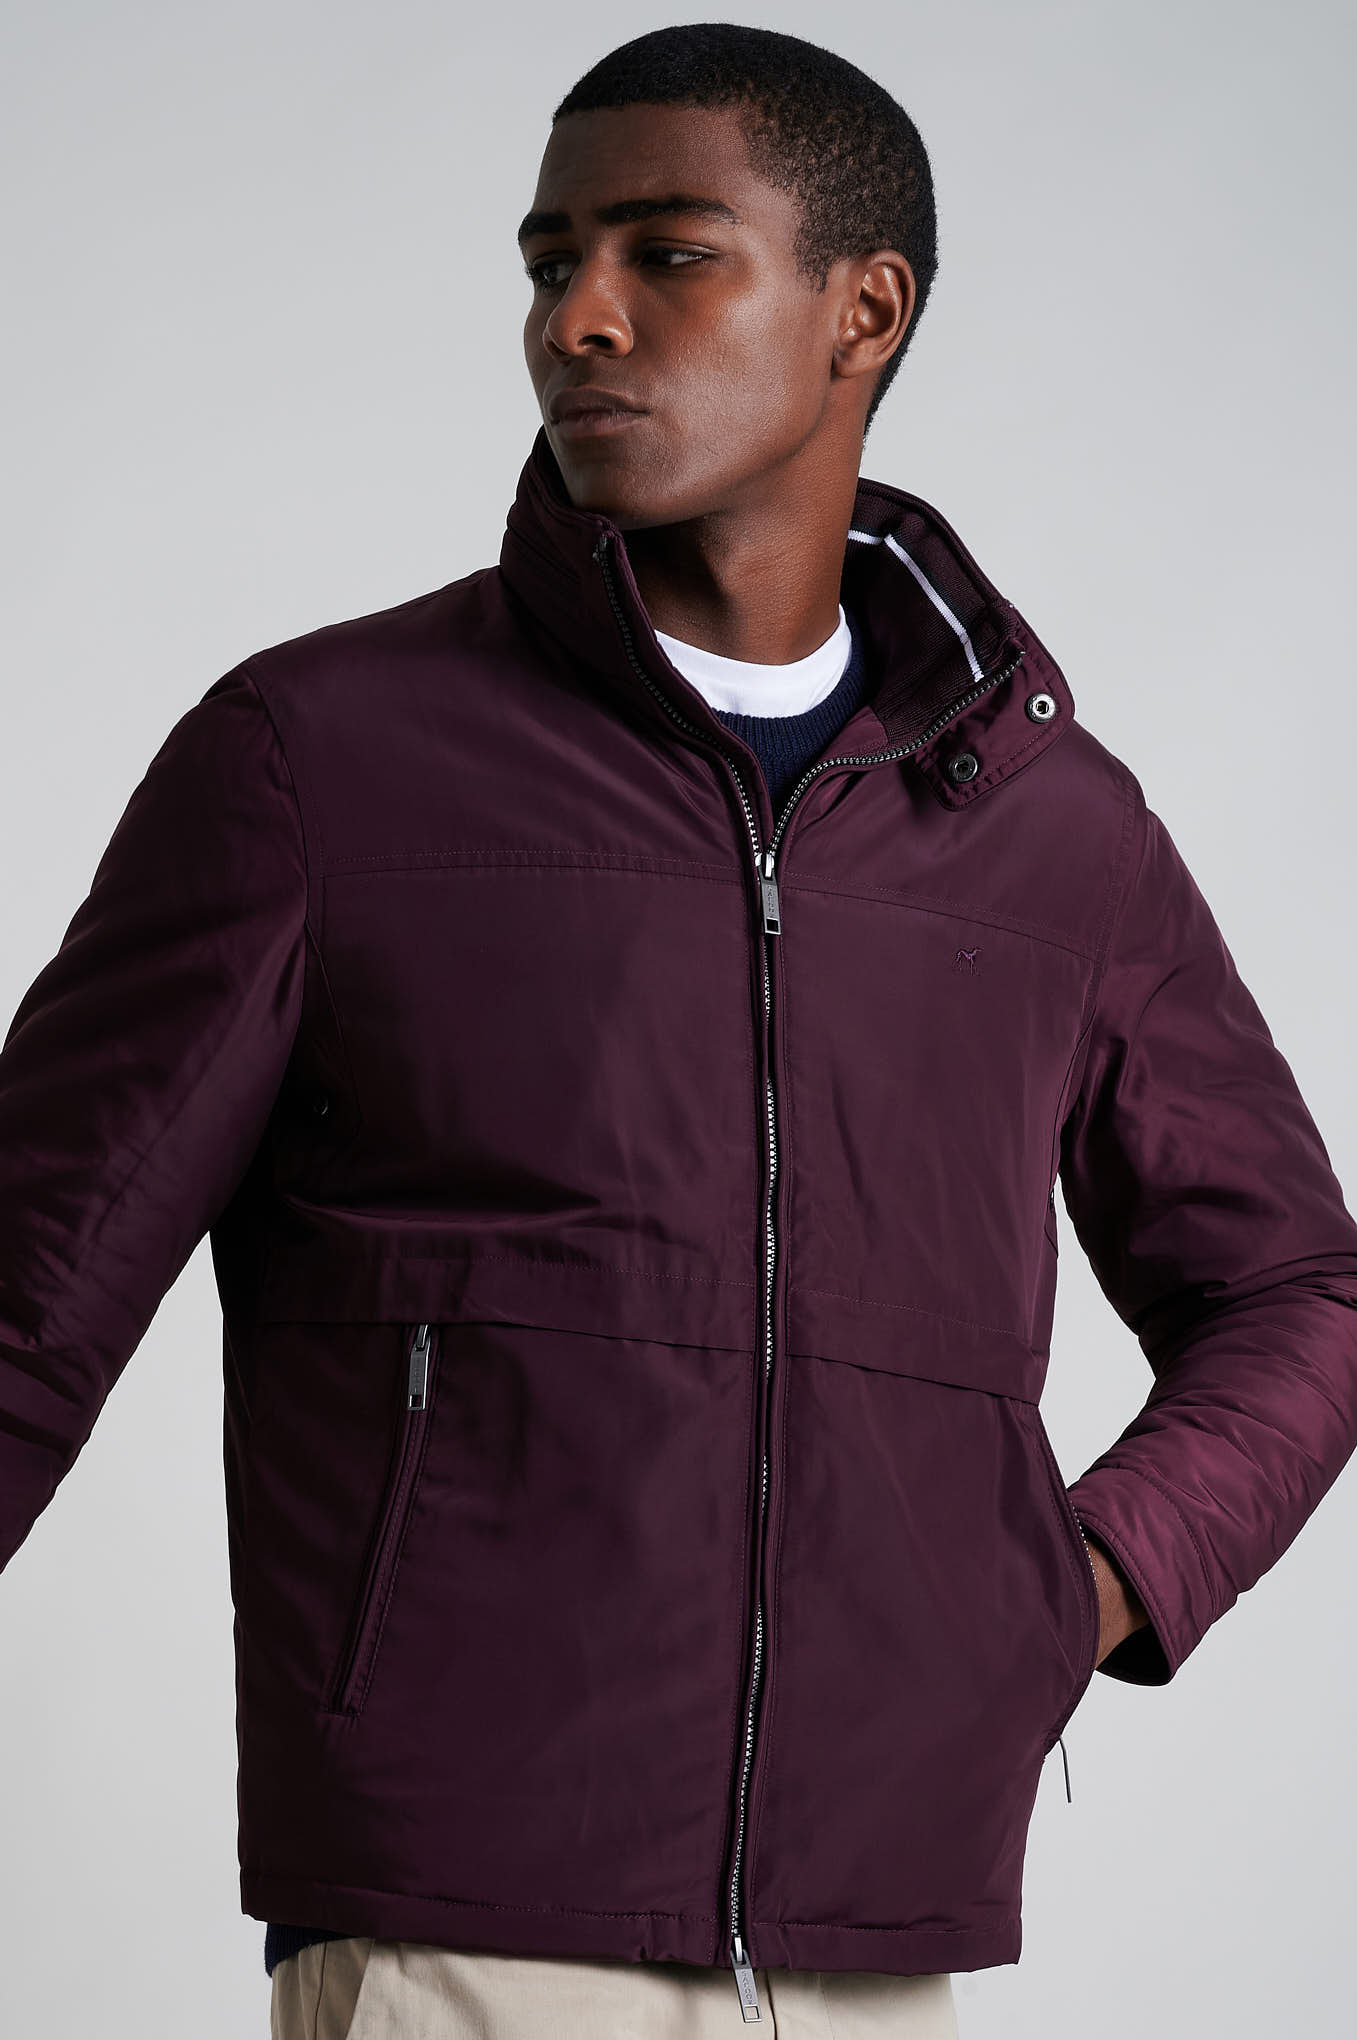 Jacket Bordeaux Casual Man